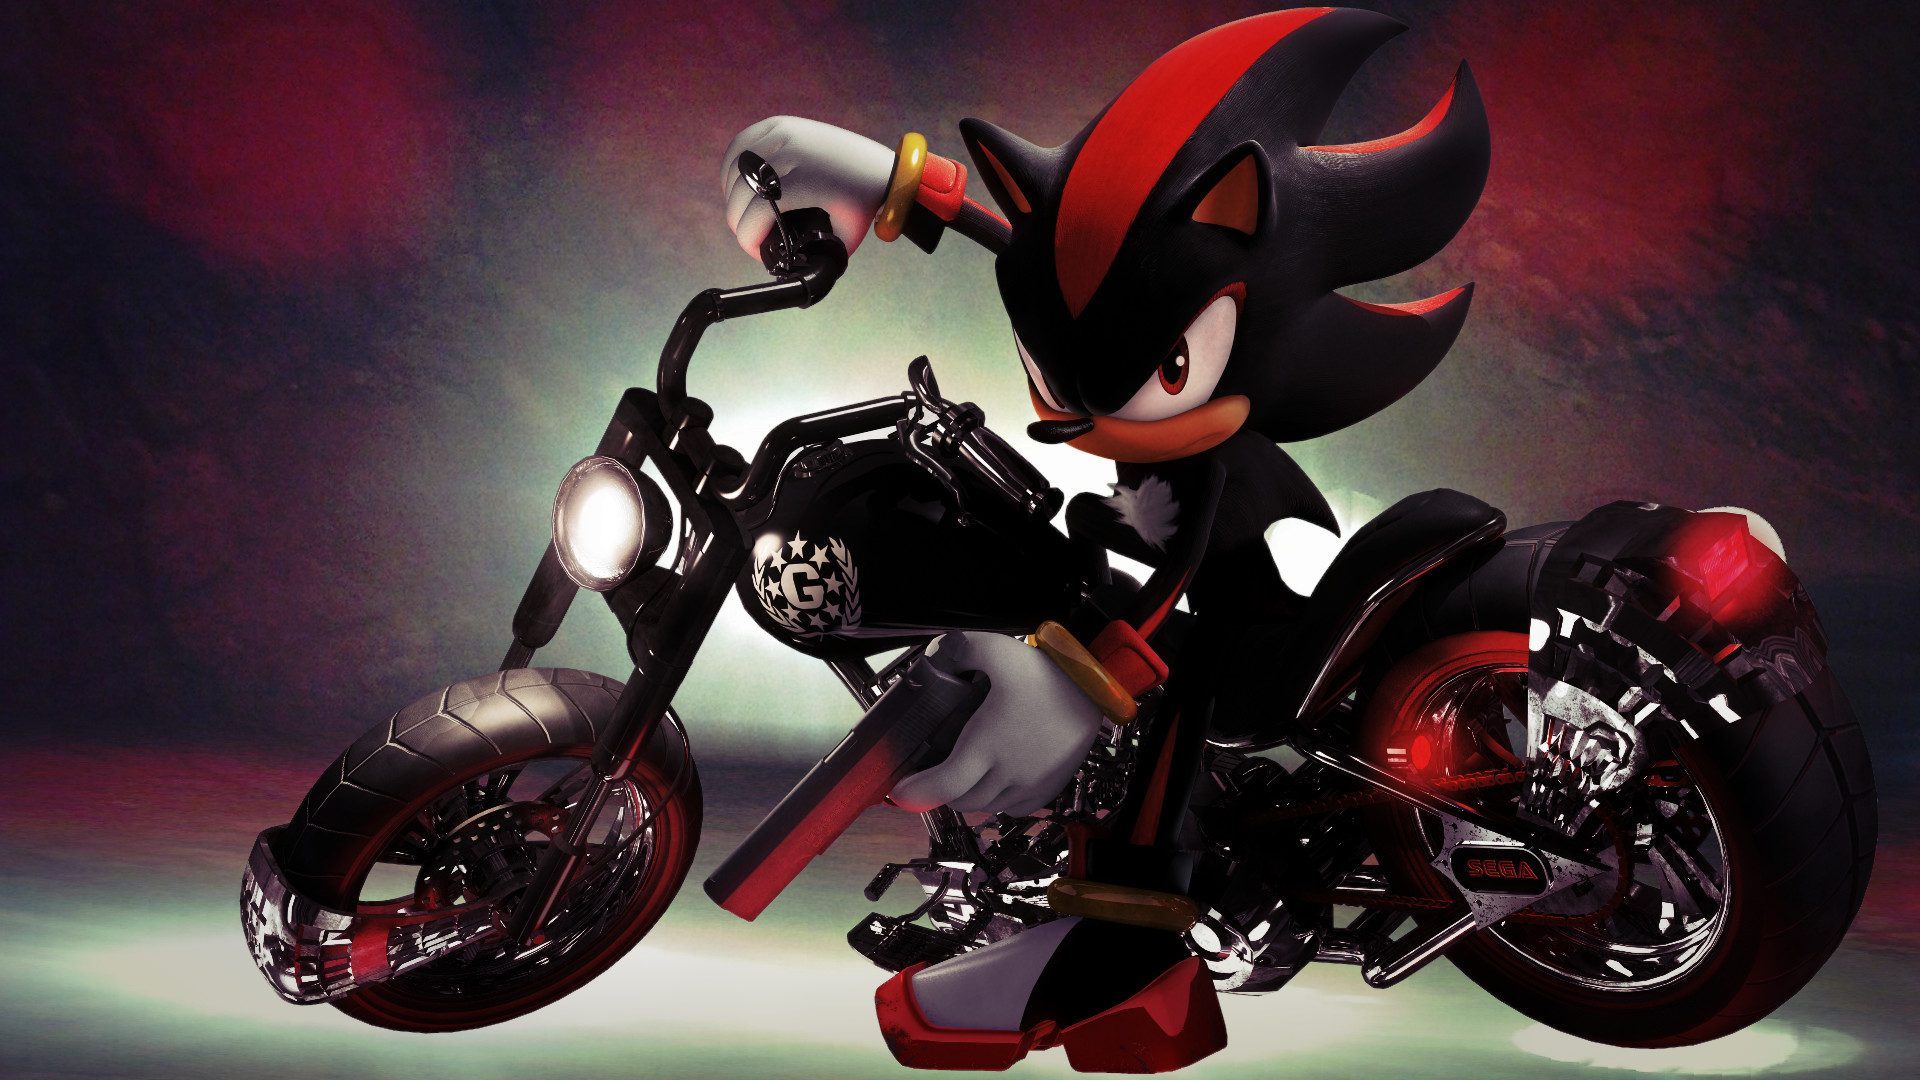 1920x1080 Super Shadow The Hedgehog Wallpapers High Quality HD Quality Resolution   px 4.24 MB